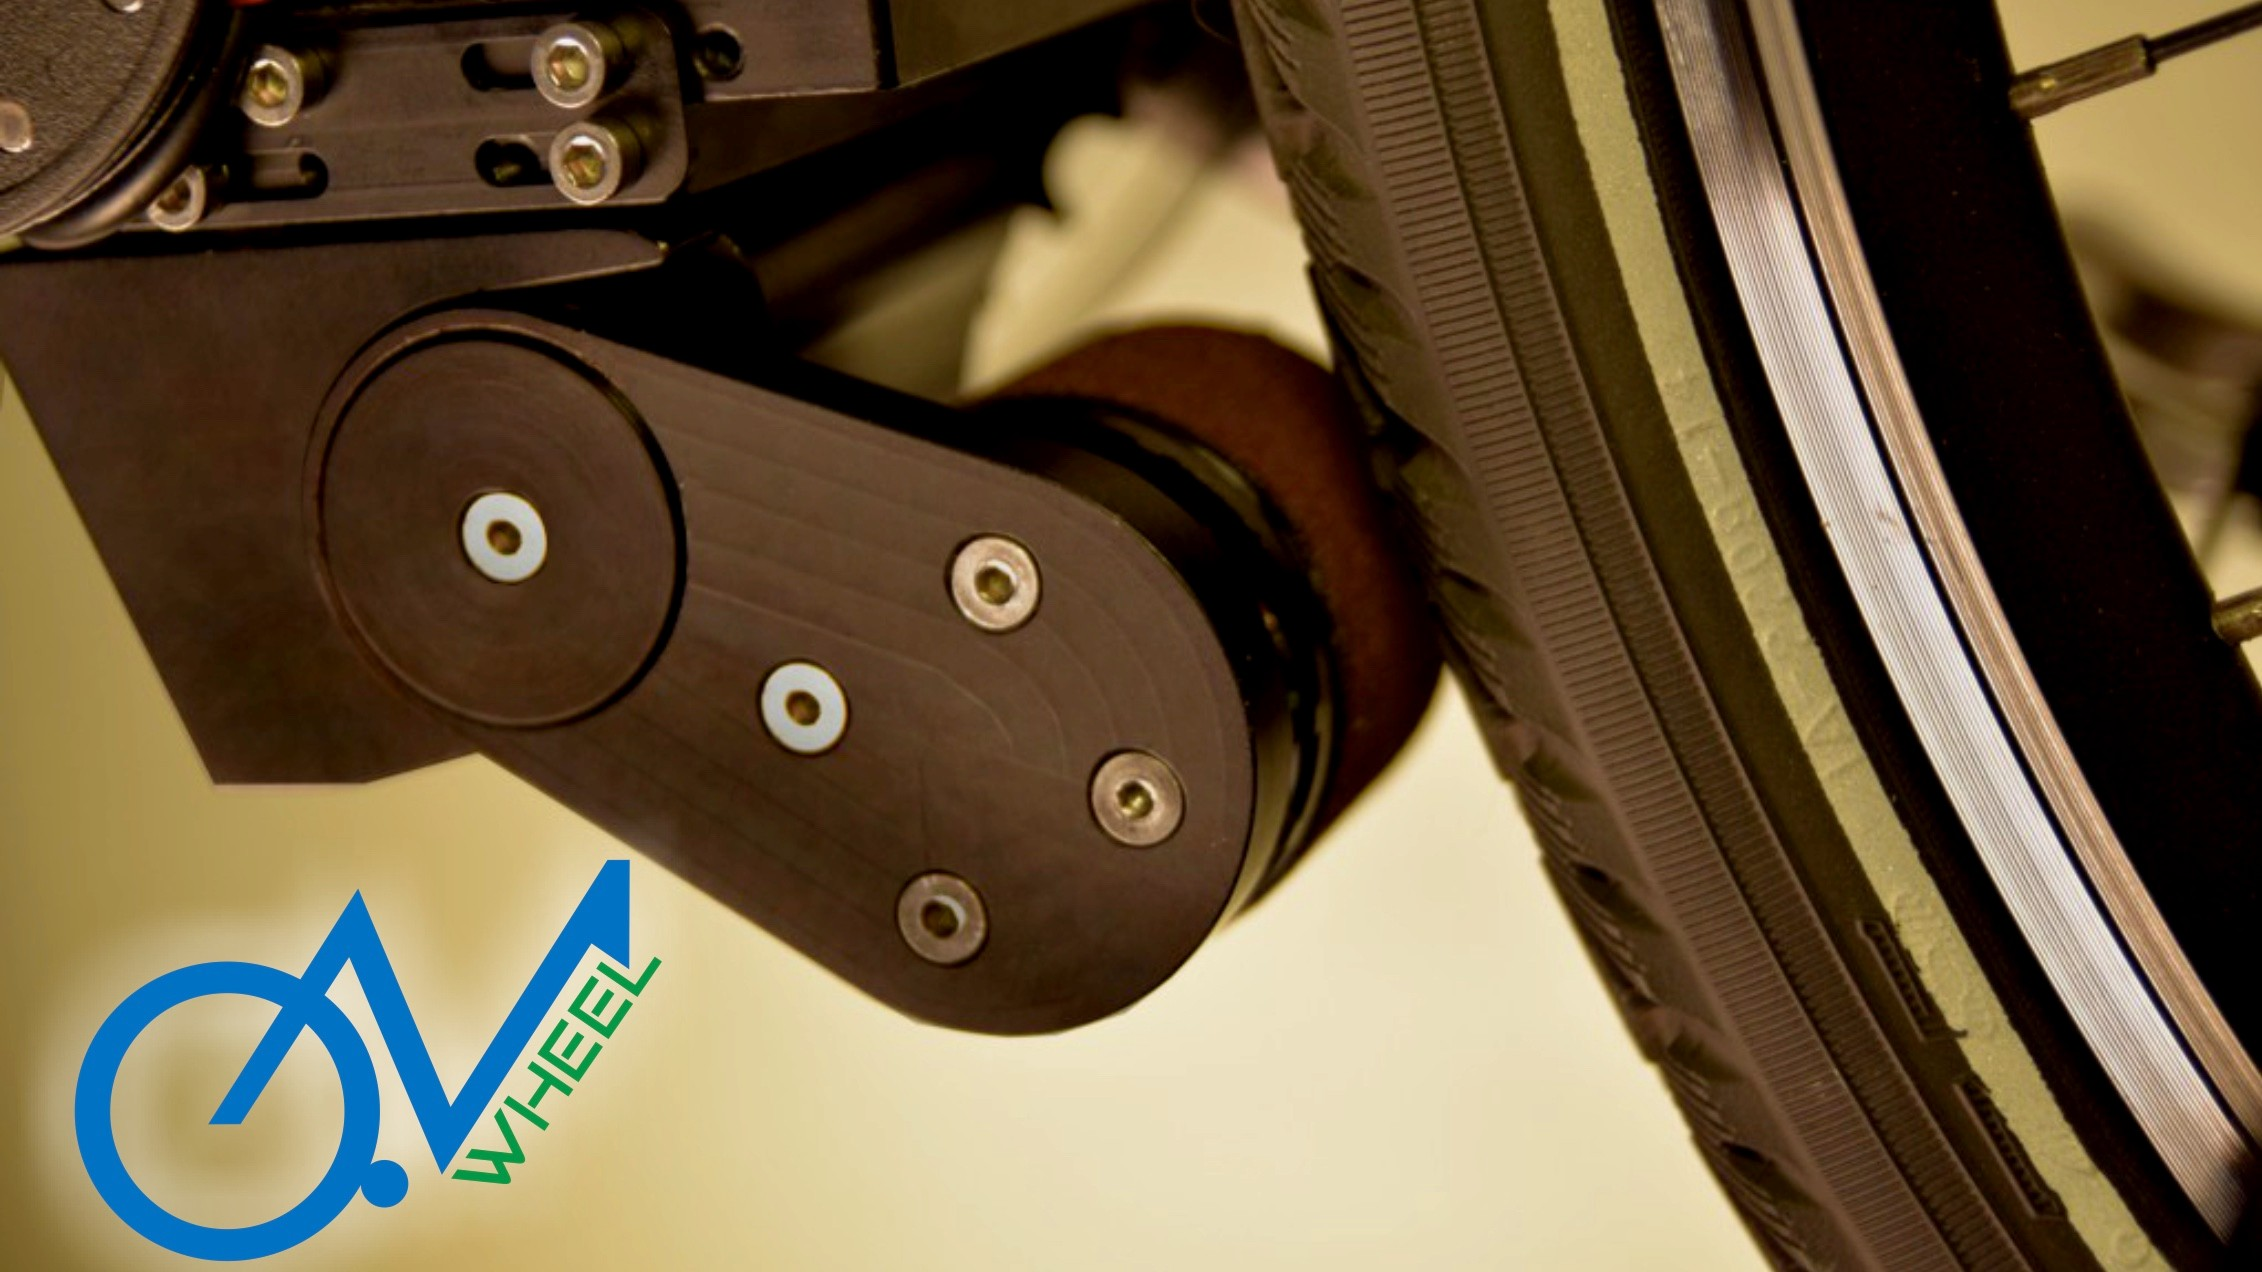 The go-e ONwheel powers your rear wheel via friction from underneath